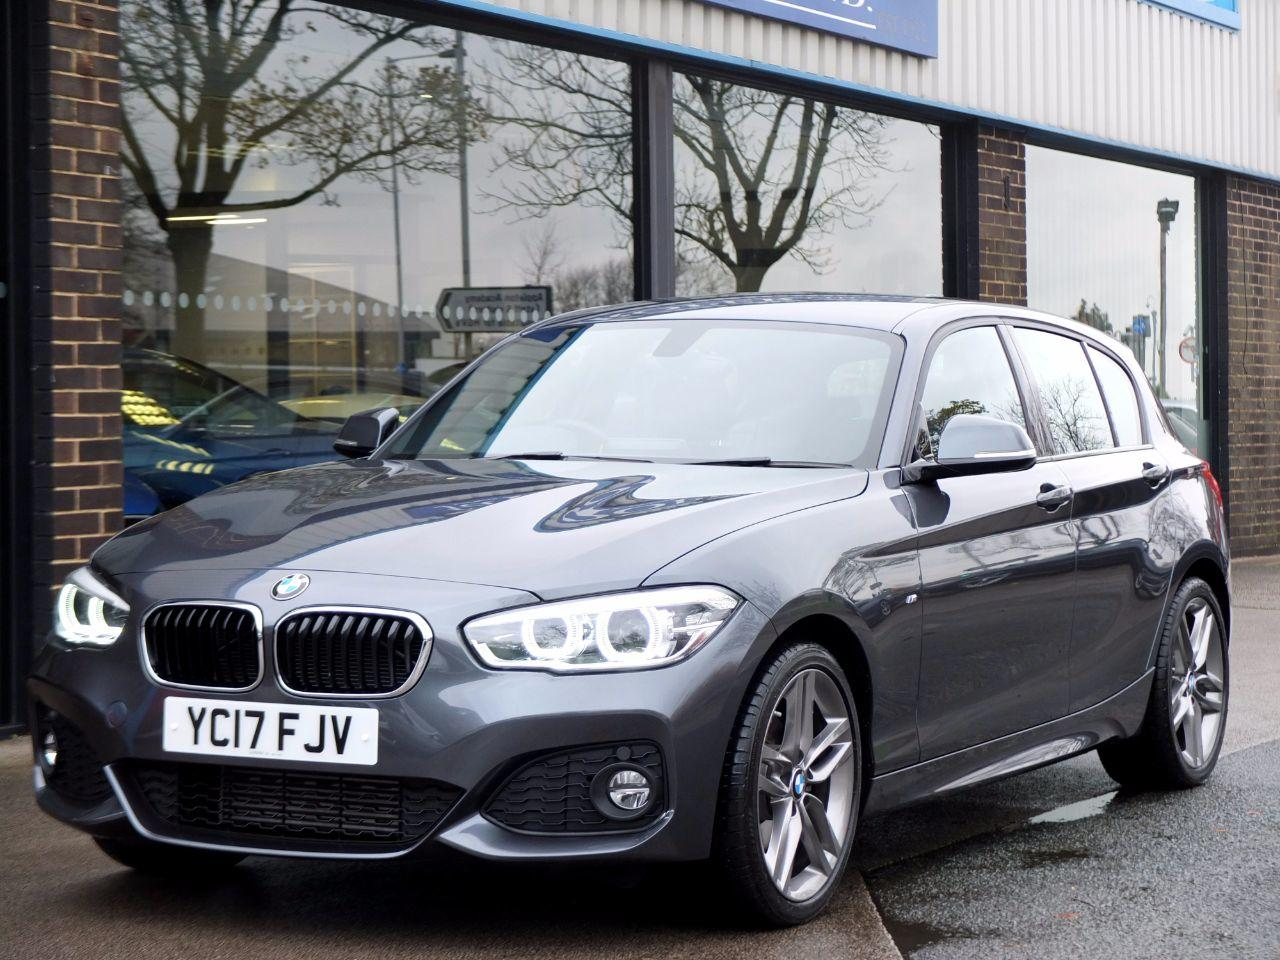 BMW 1 Series 2.0 125D M Sport 5 door Auto 224bhp Hatchback Diesel Mineral Grey MetallicBMW 1 Series 2.0 125D M Sport 5 door Auto 224bhp Hatchback Diesel Mineral Grey Metallic at fa Roper Ltd Bradford